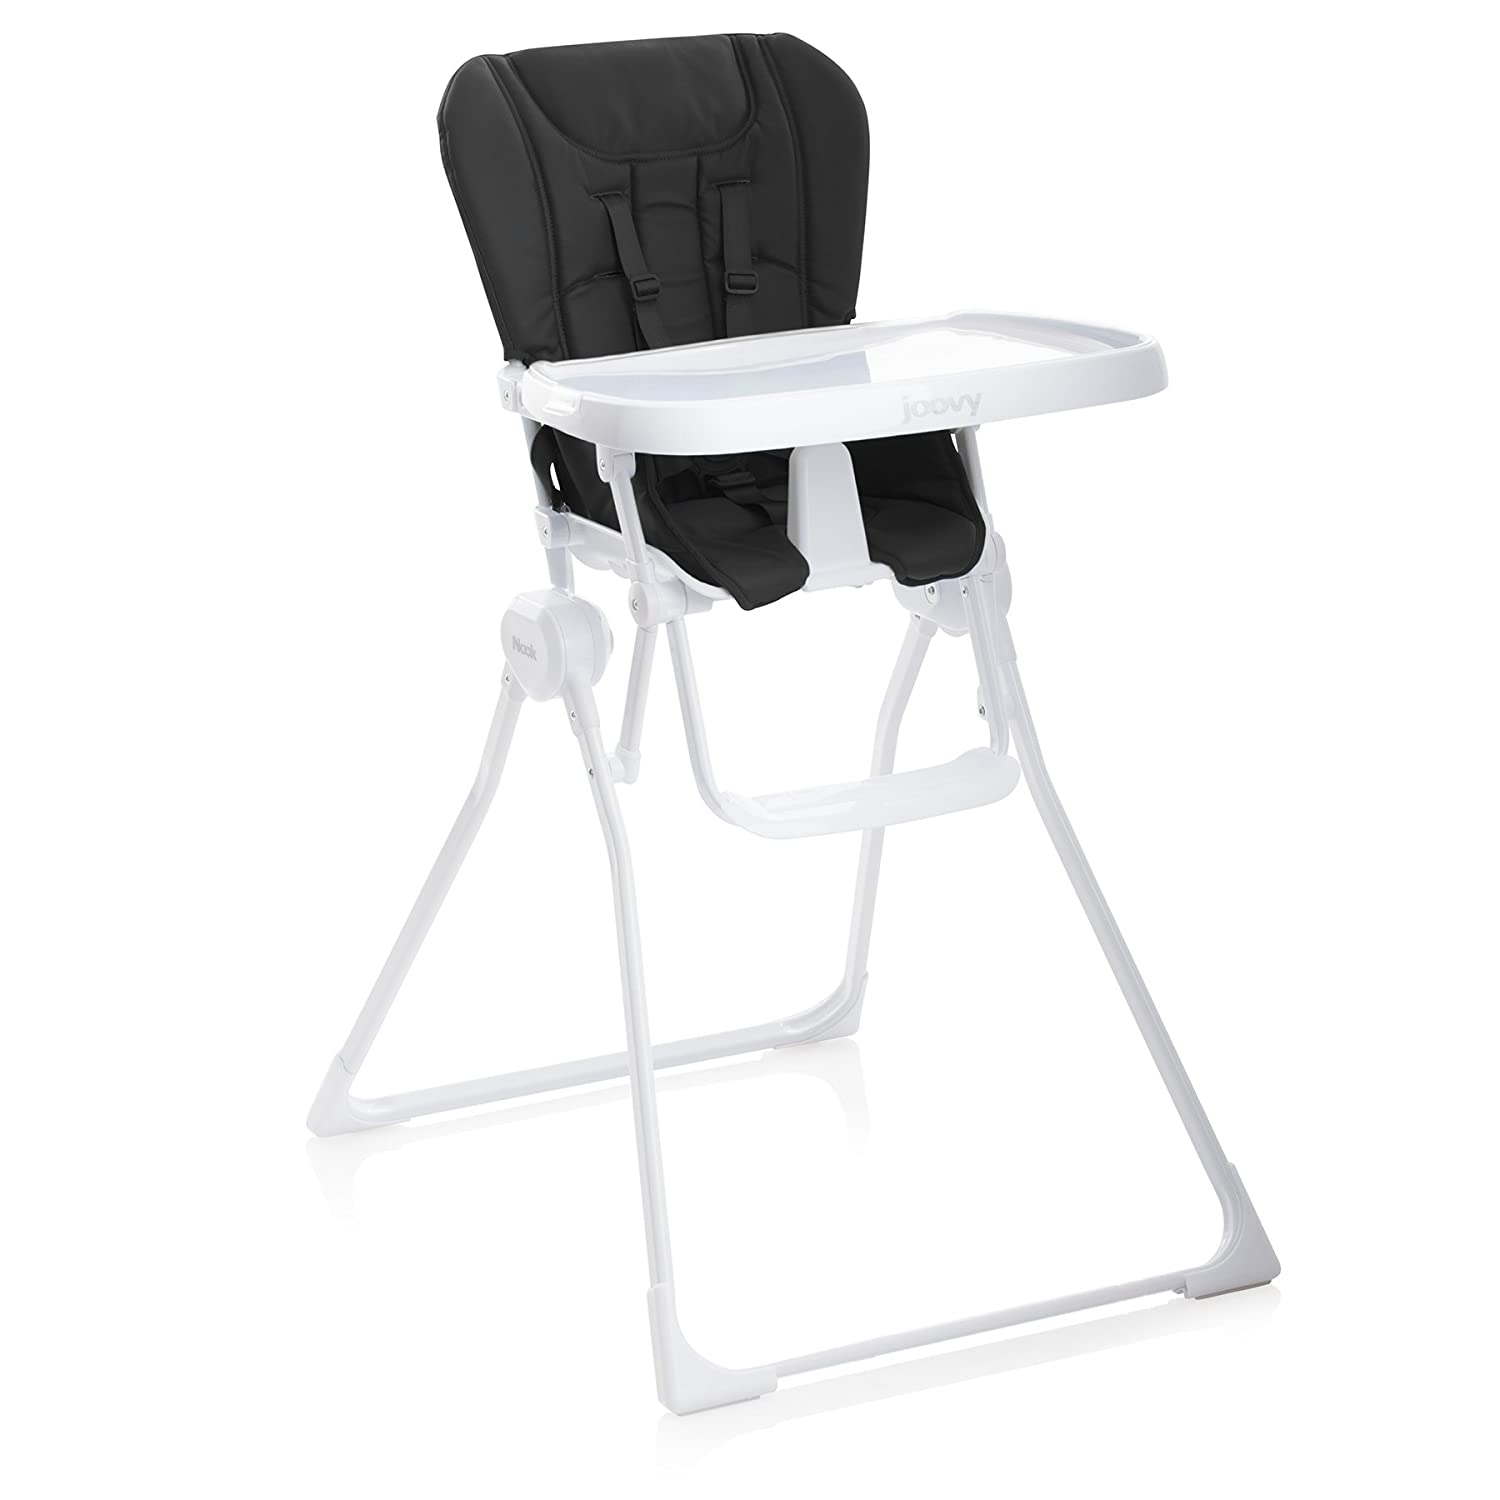 JOOVY New Nook High Chair, Black 2067